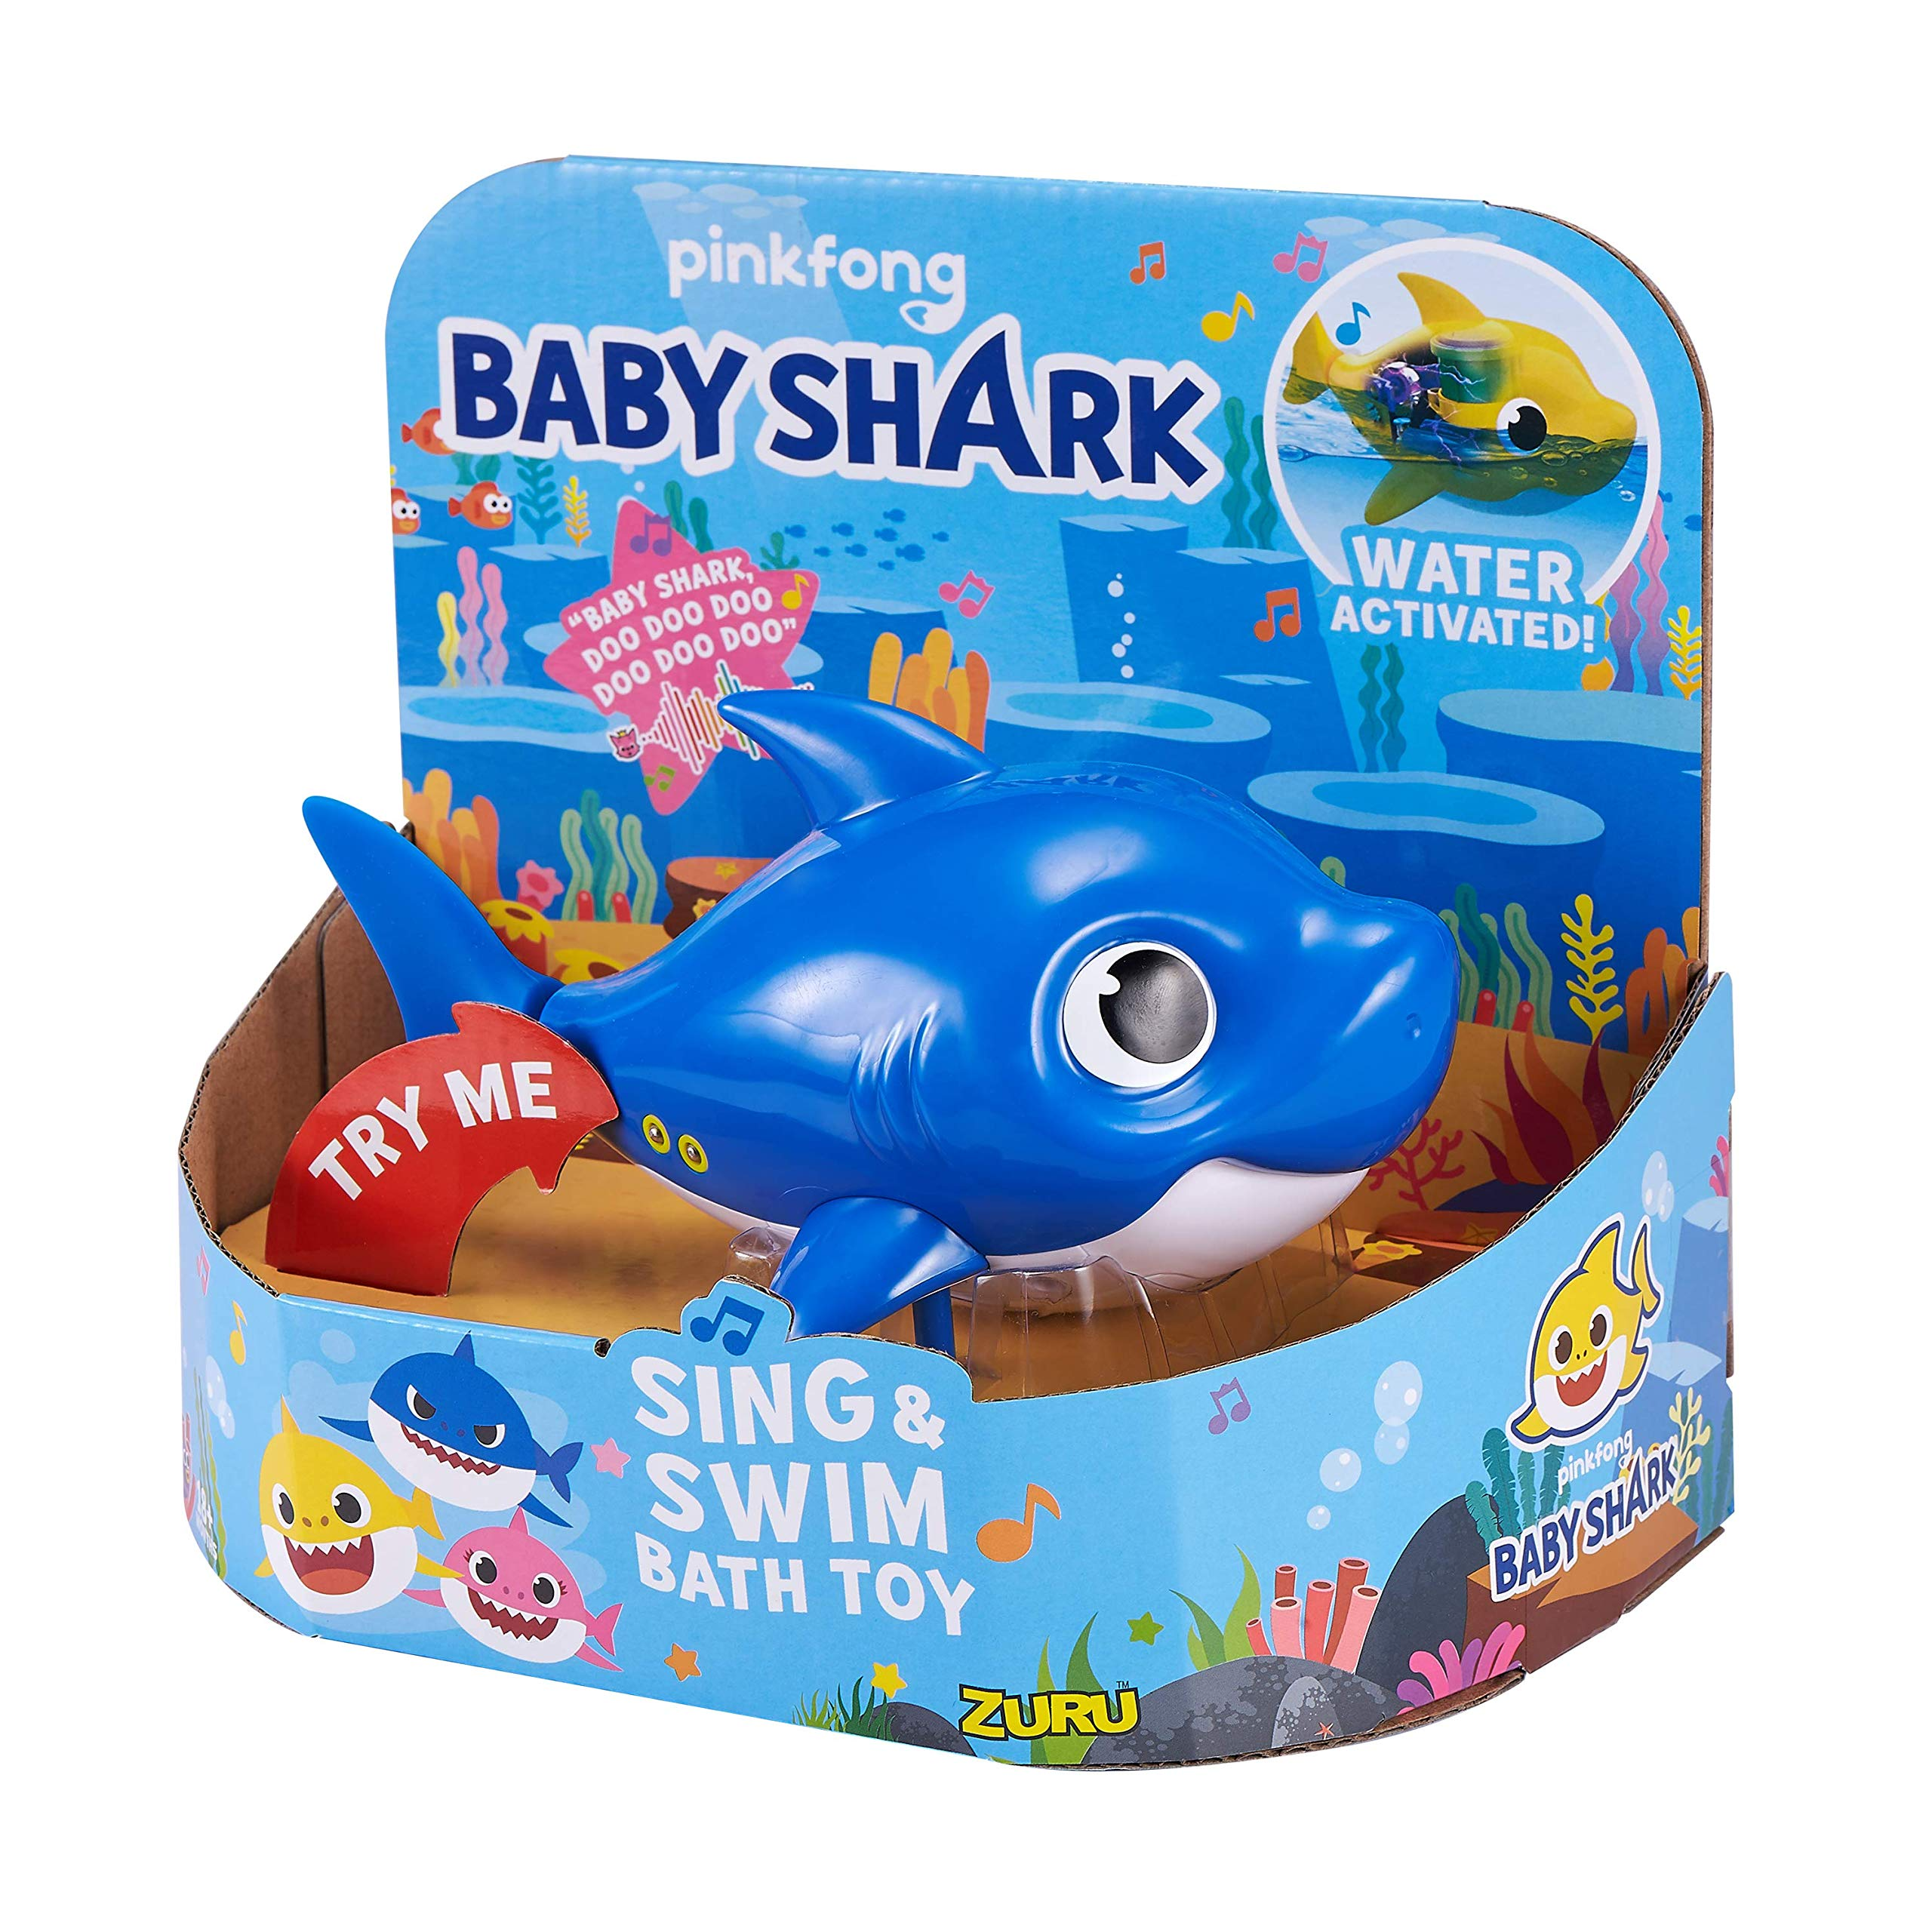 Robo Alive Junior Baby Shark Battery-Powered Sing and Swim Bath Toy by ZURU - Daddy Shark (Blue) by Robo Alive Junior (Image #2)